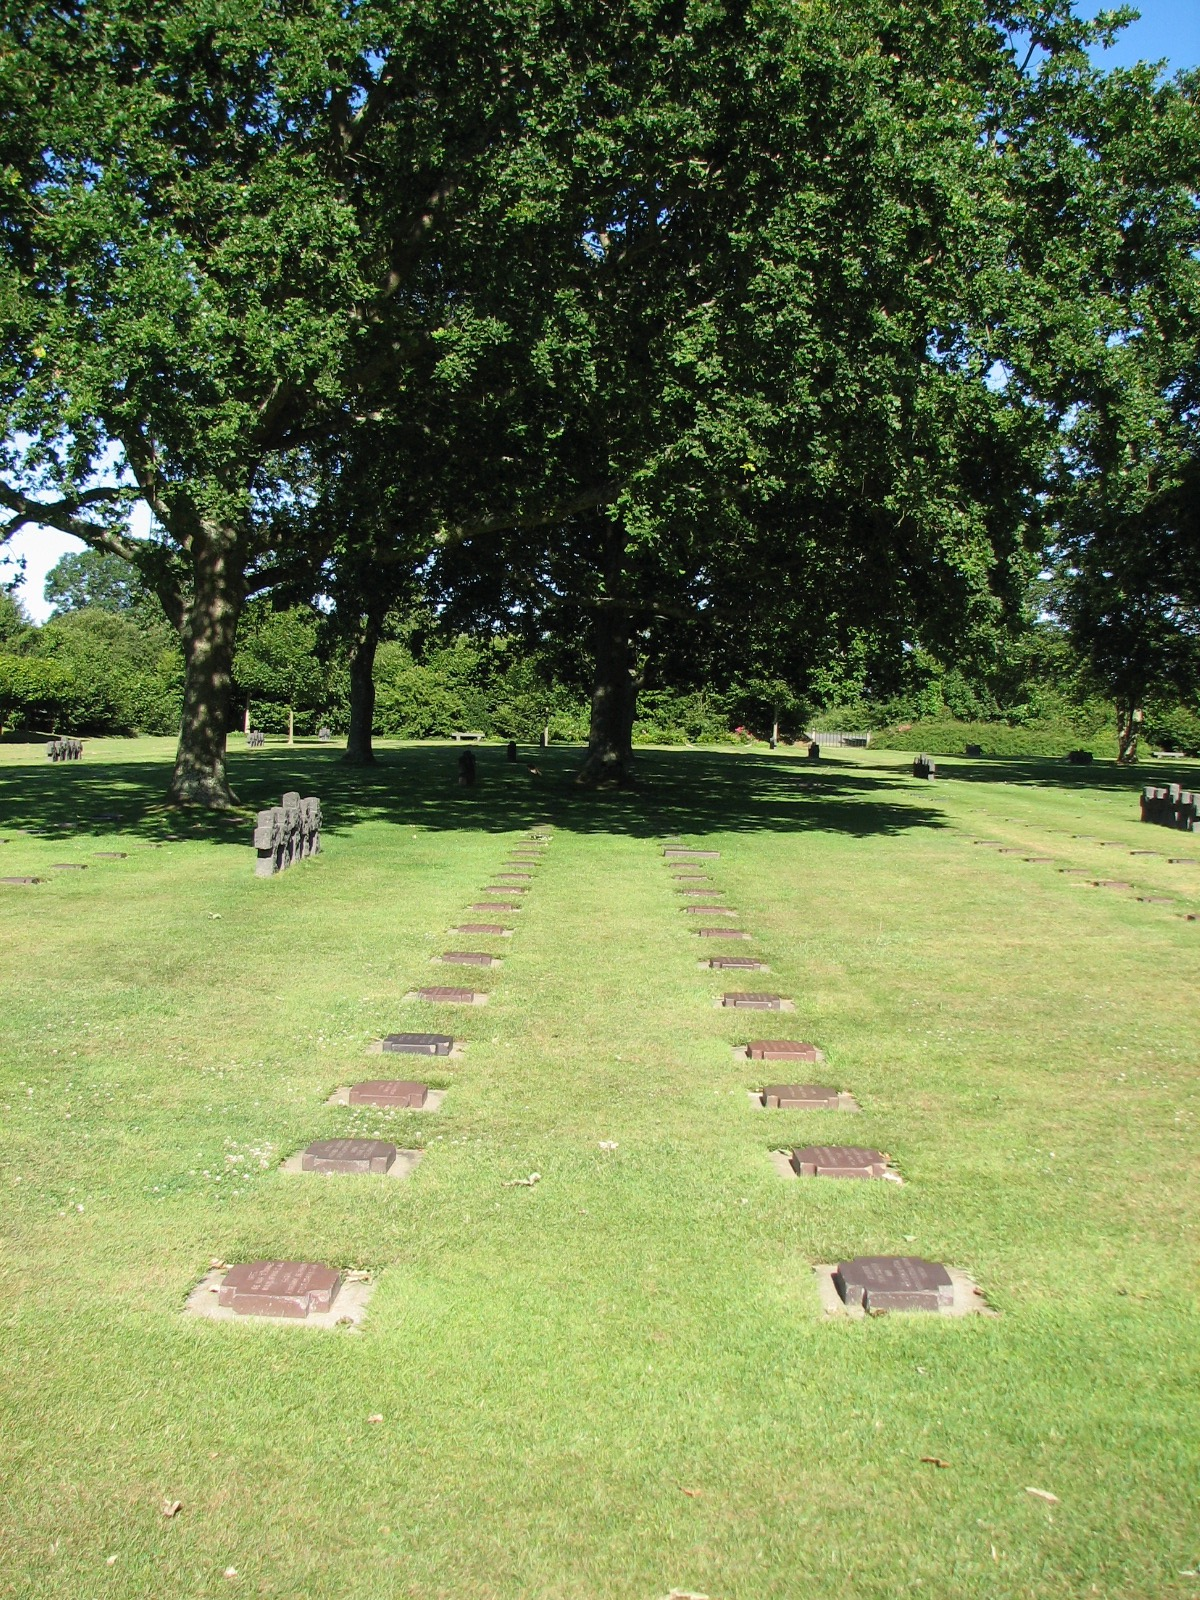 The German graves - 2 fallen in each